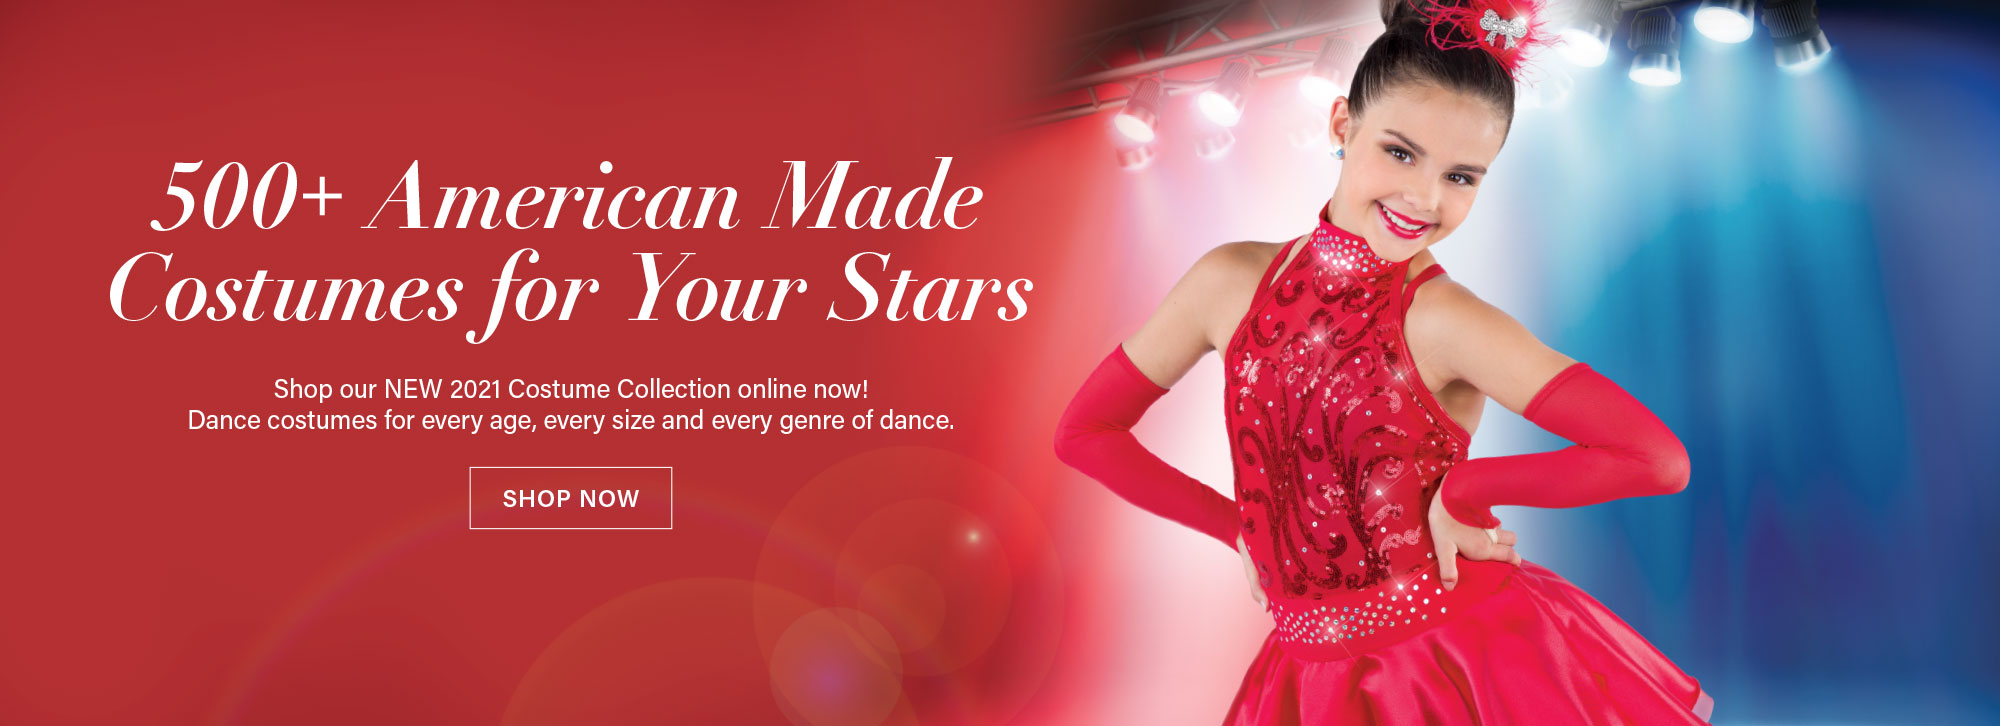 Shop our new dance costume collection!